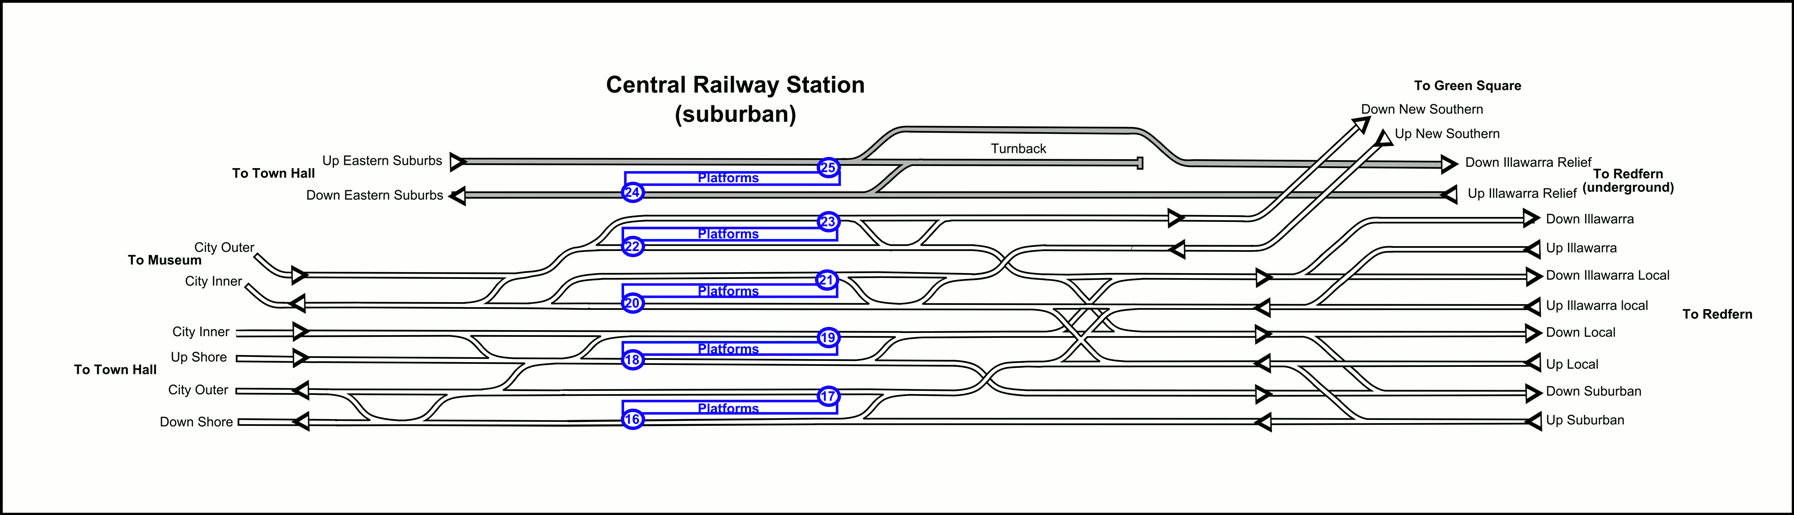 hight resolution of file cityrail central track diagram png